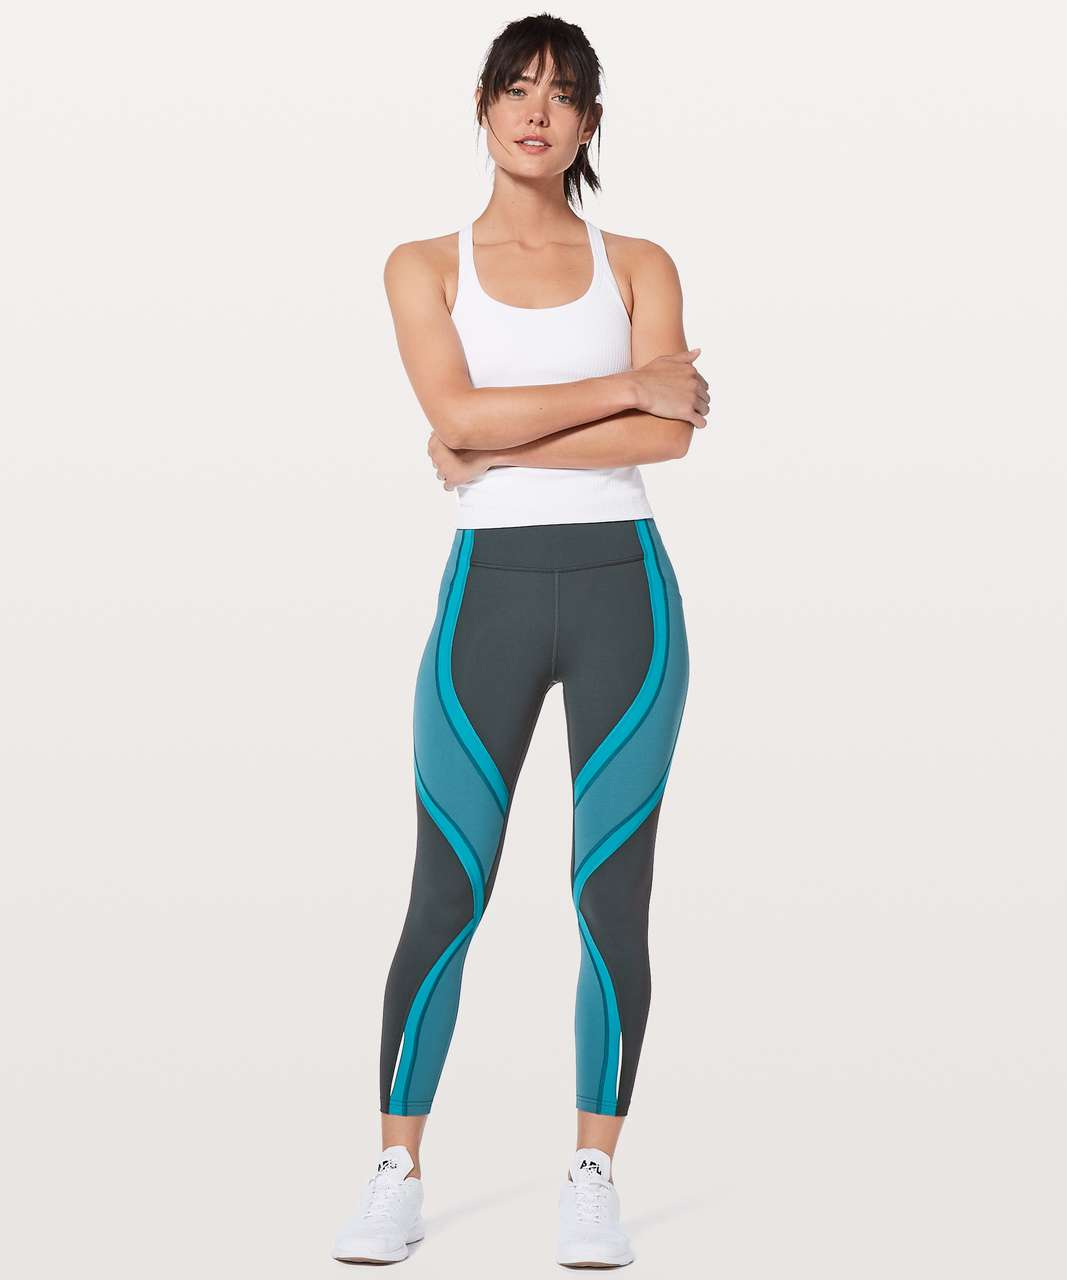 "Lululemon Wild Twist 7/8 Tight *25"" - Gravity / Pacific Teal / Teal Blue"